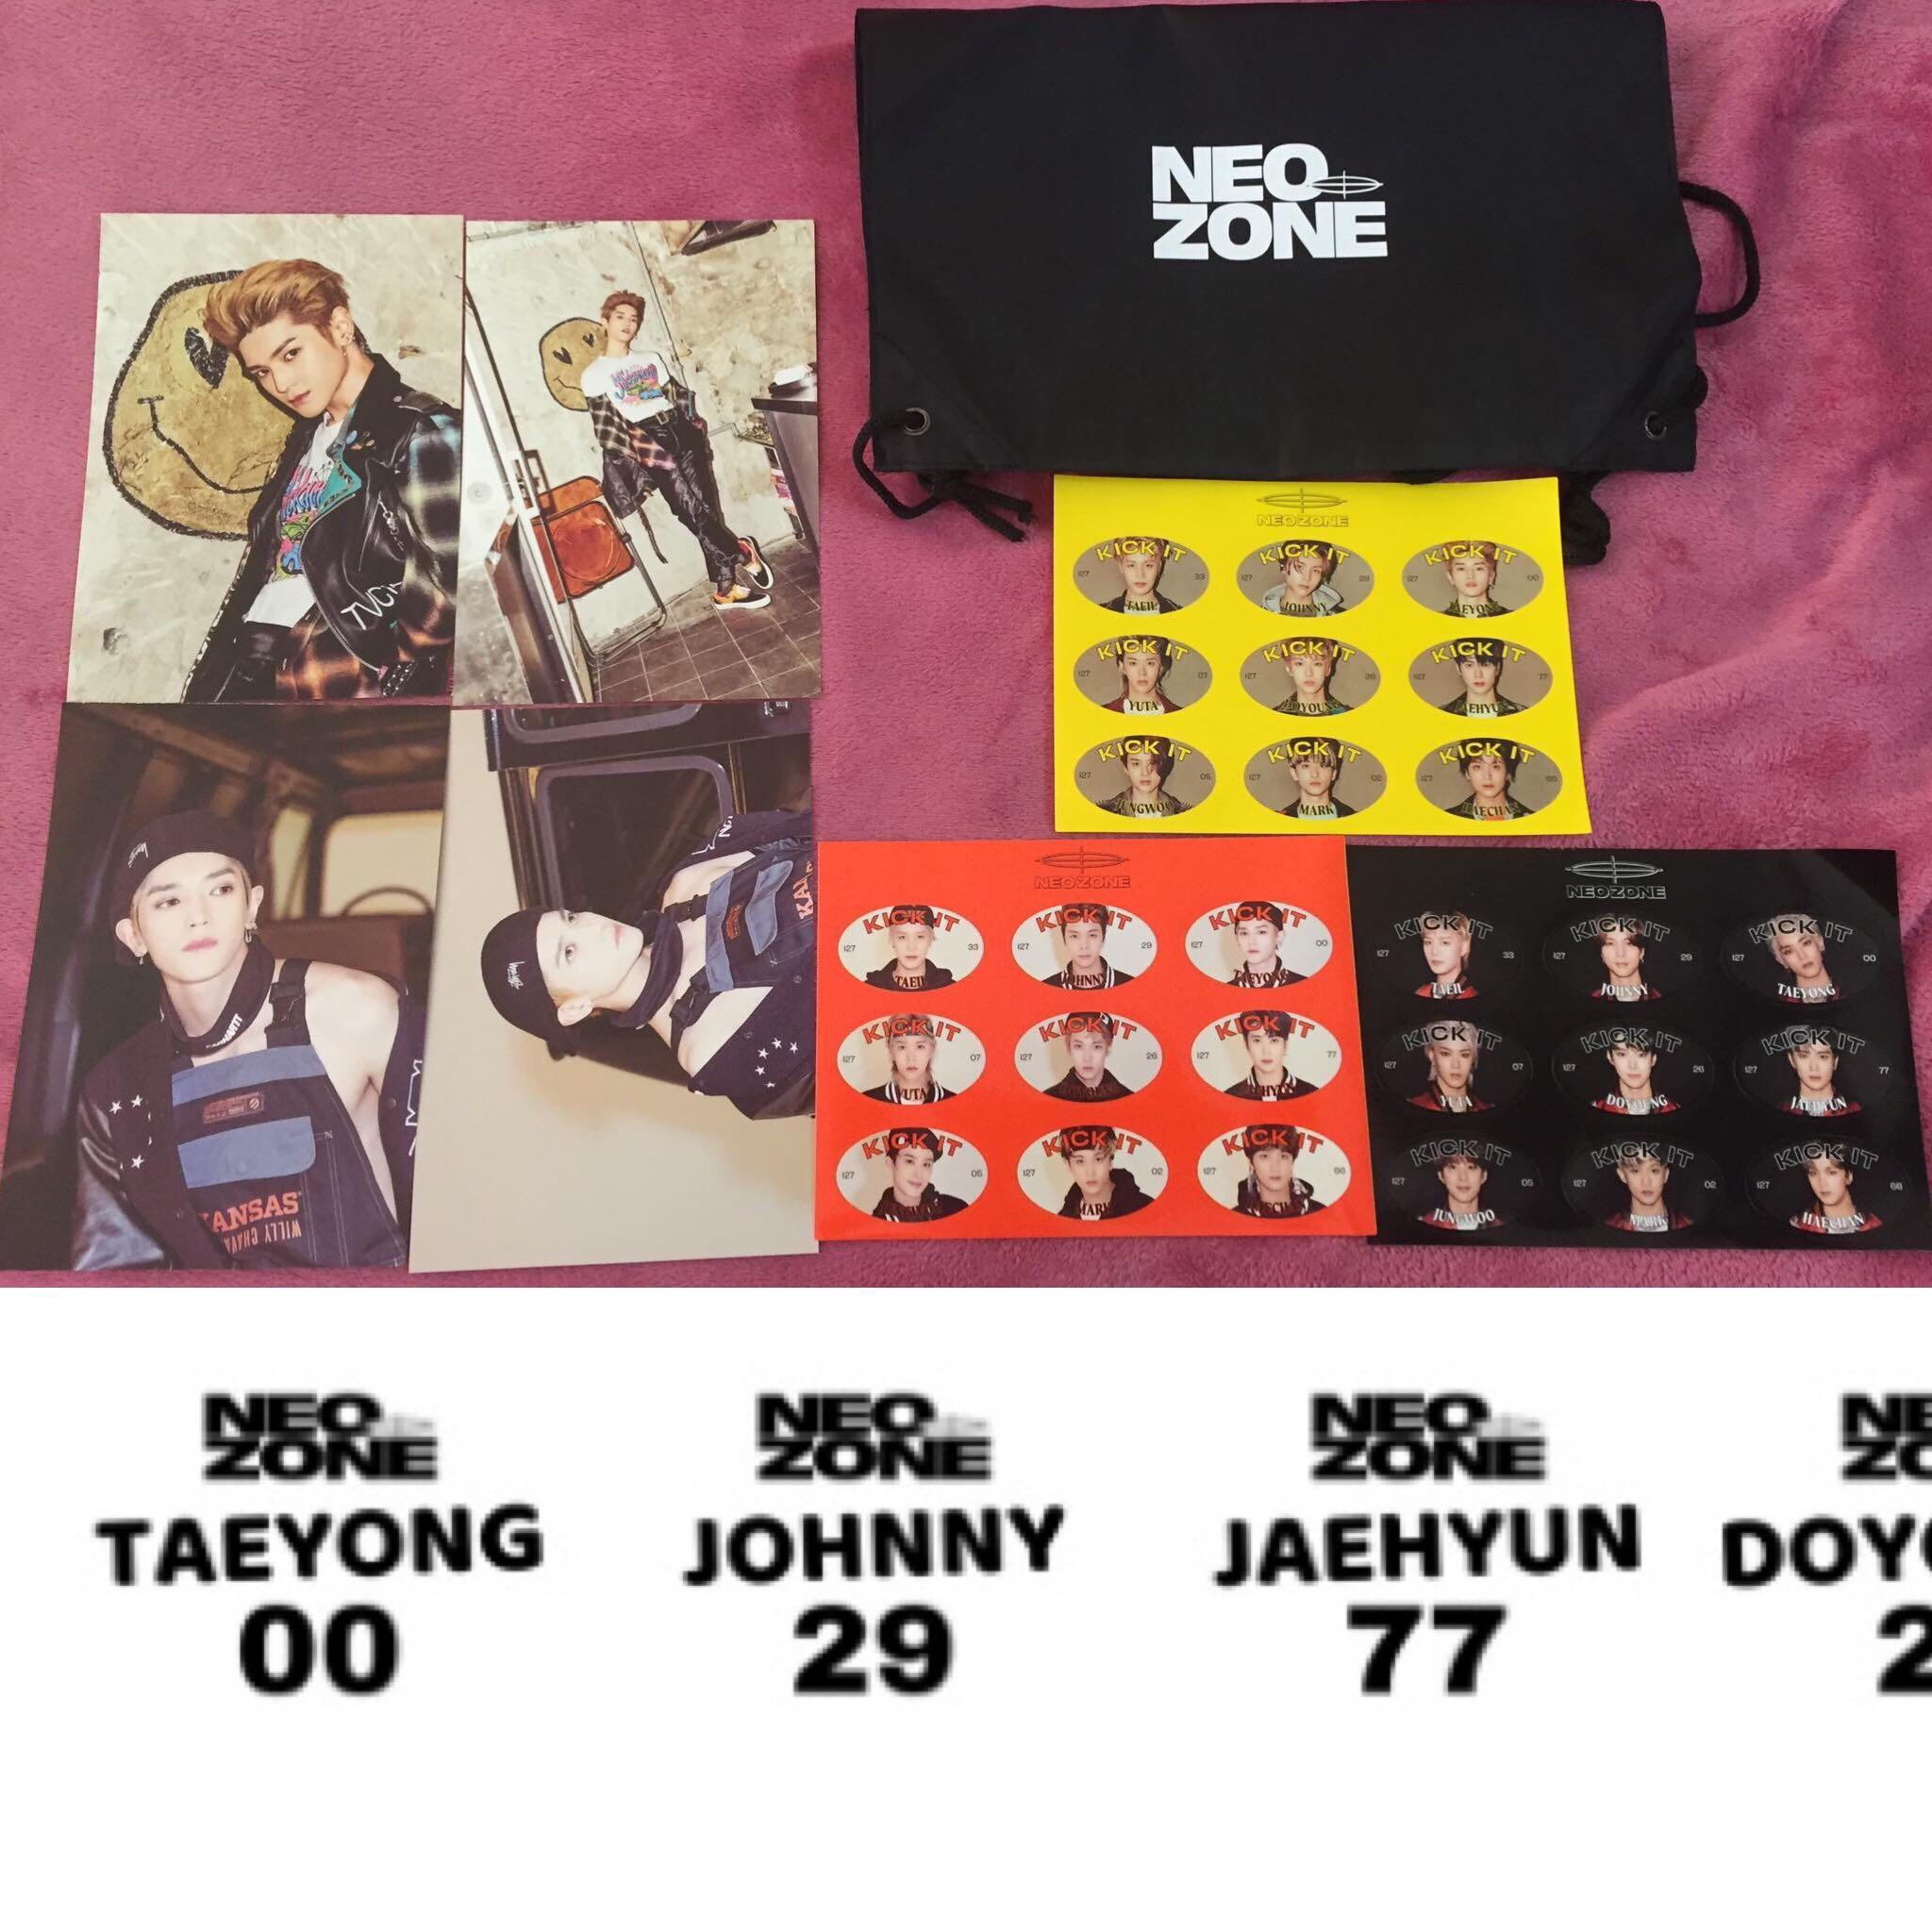 Member Set NCT 127 Neo Zone 4 Postcards + 3 Stickers + Bag